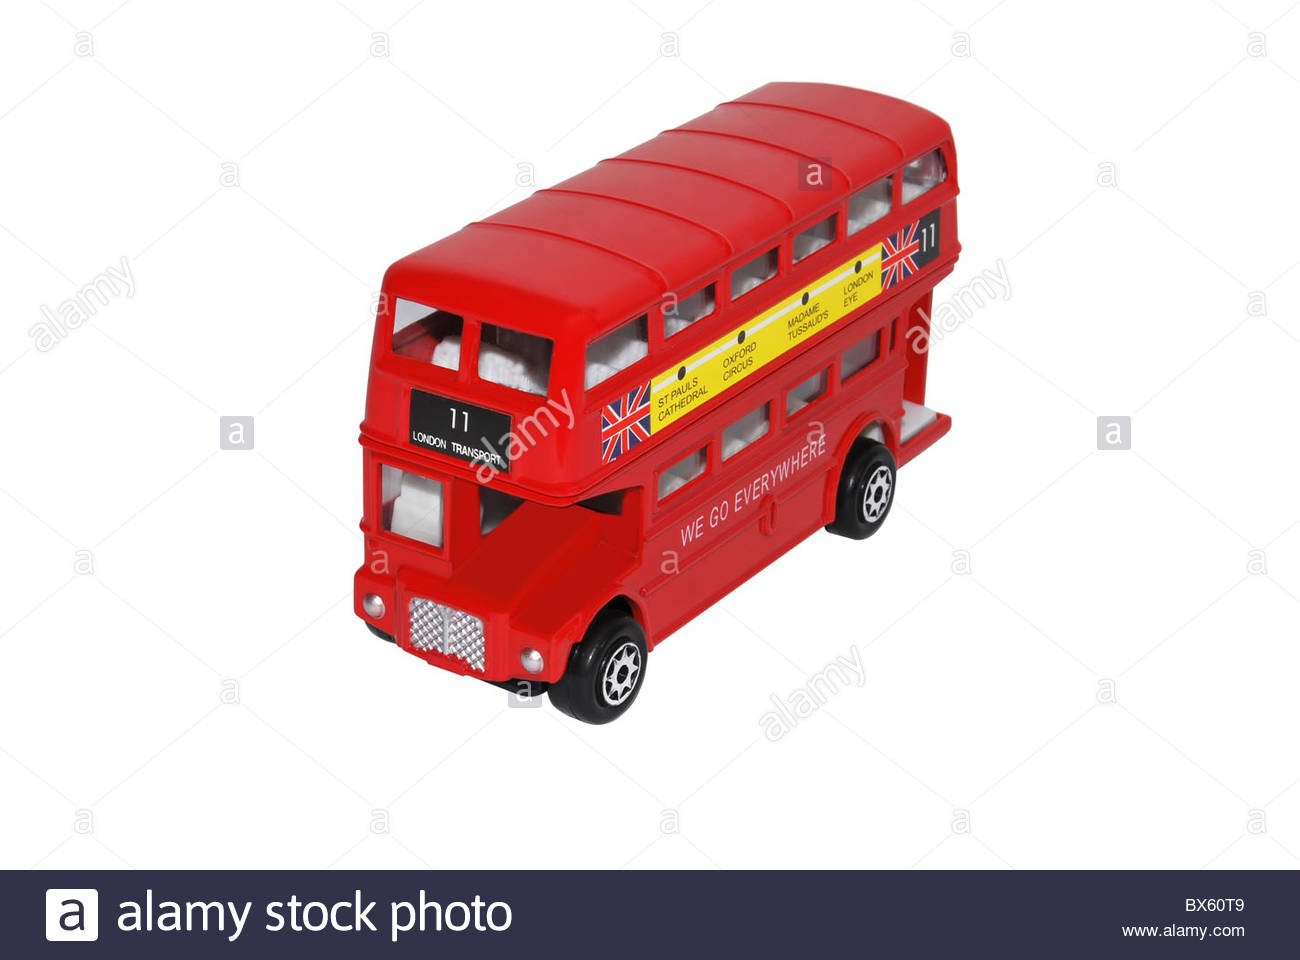 Model of a London double decked bus isolated on white - Stock Image